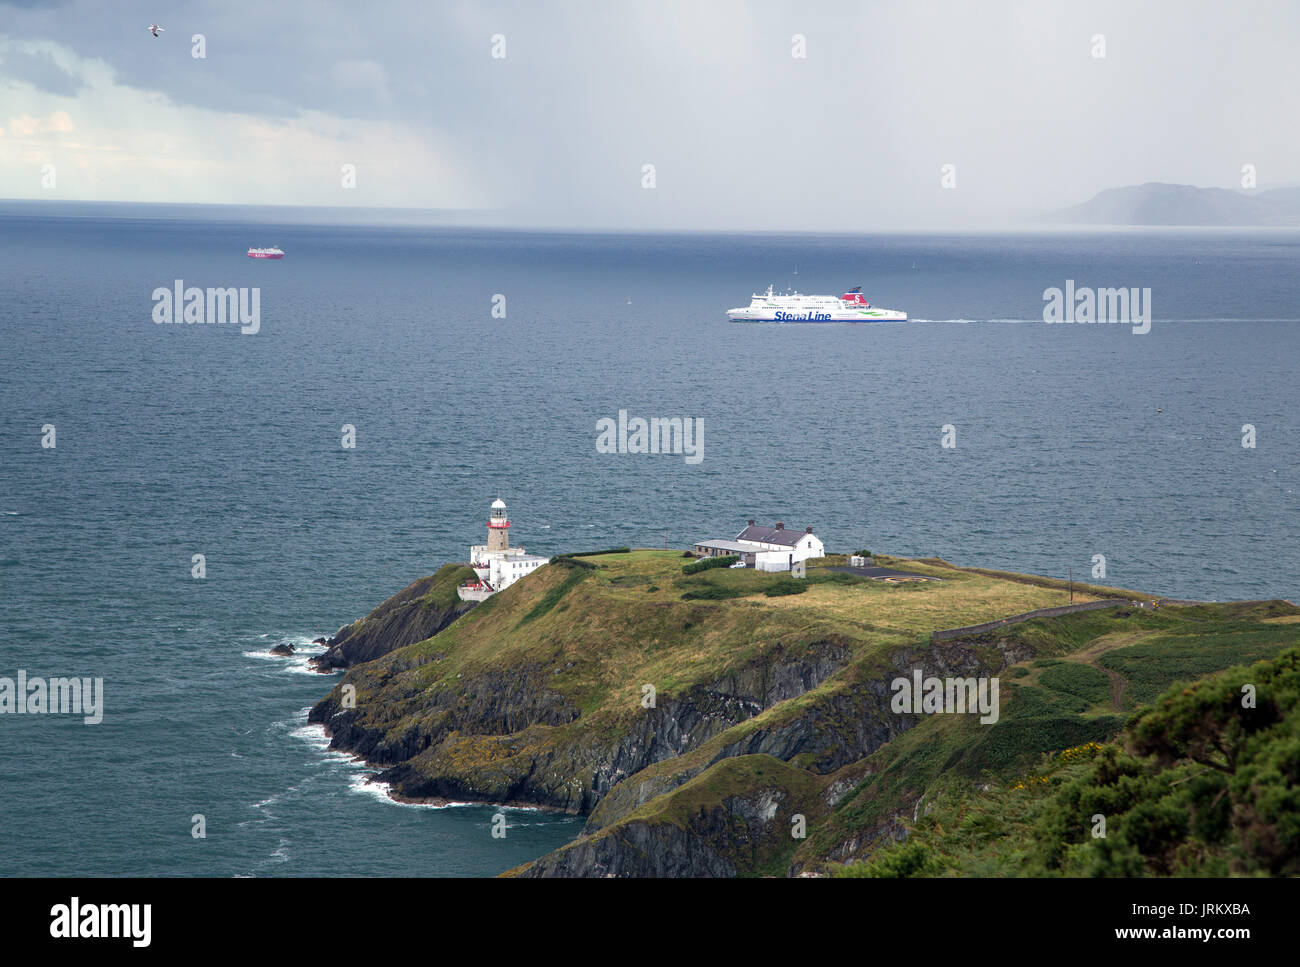 The Dún Laoghaire ferry passing Baily's Lighthouse with a rain squall in the background - Stock Image